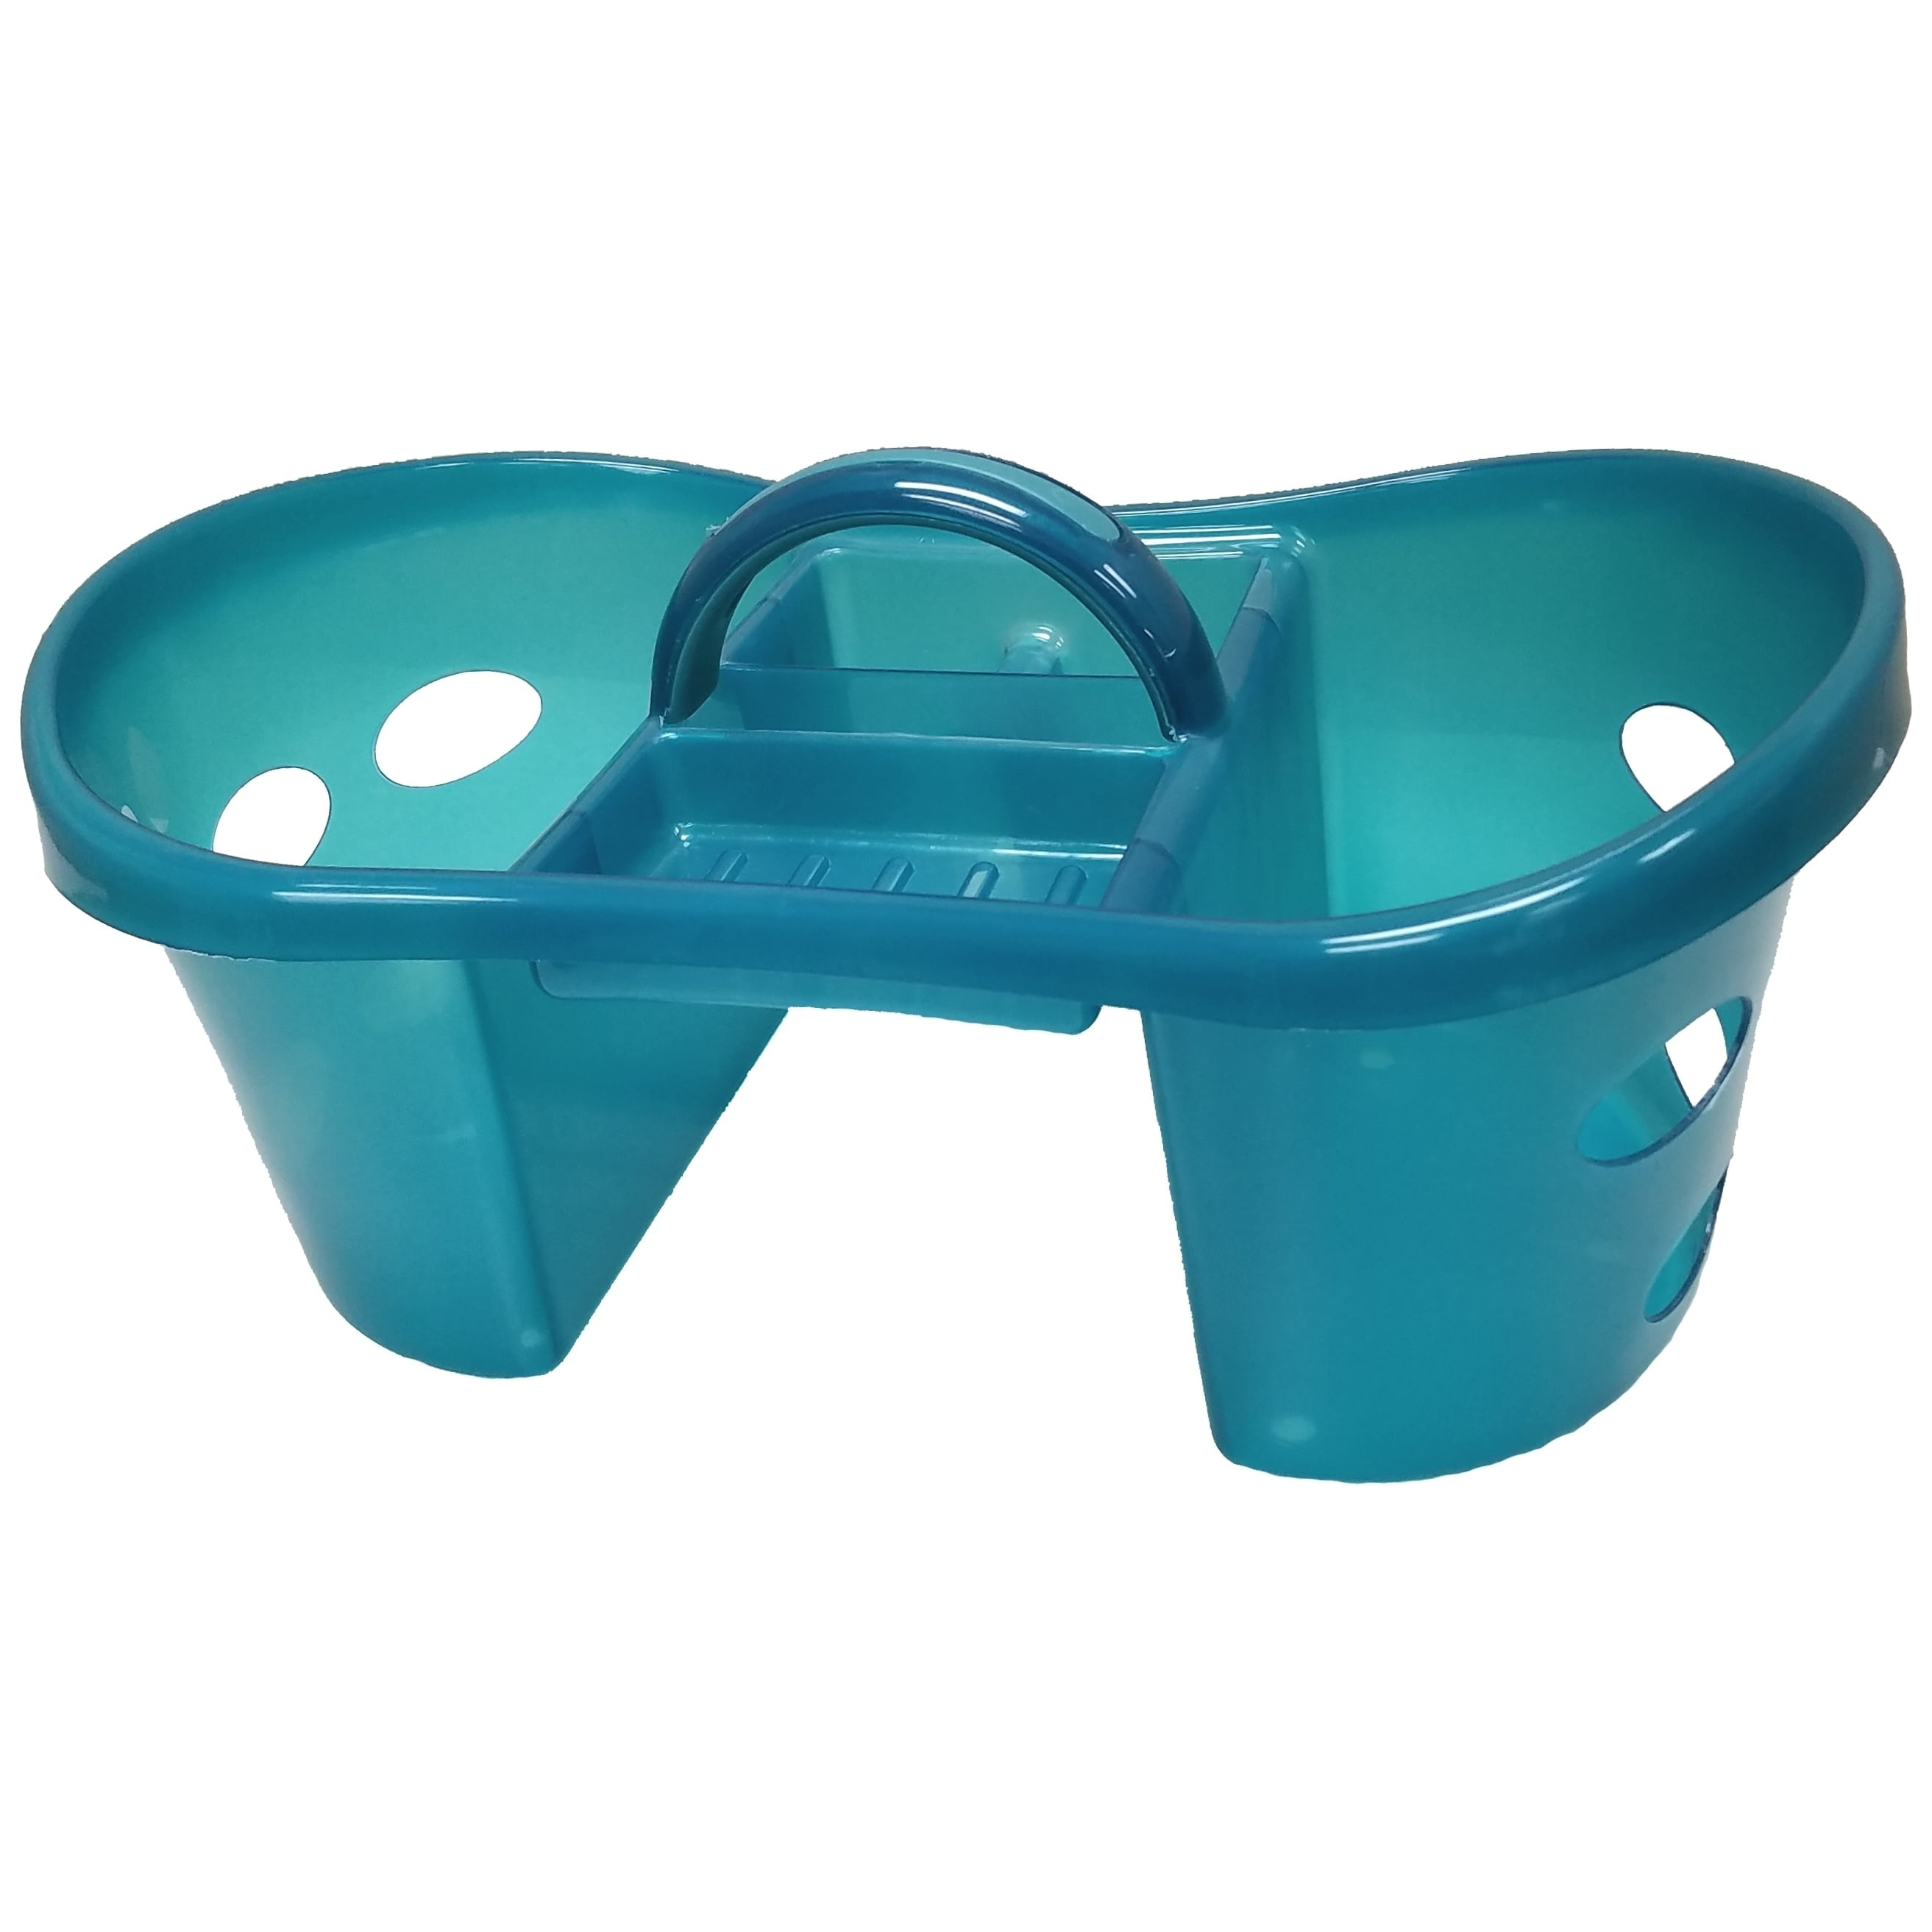 Shop Turquoise Plastic Shower/ Cleaning Caddy Tote - Free Shipping ...